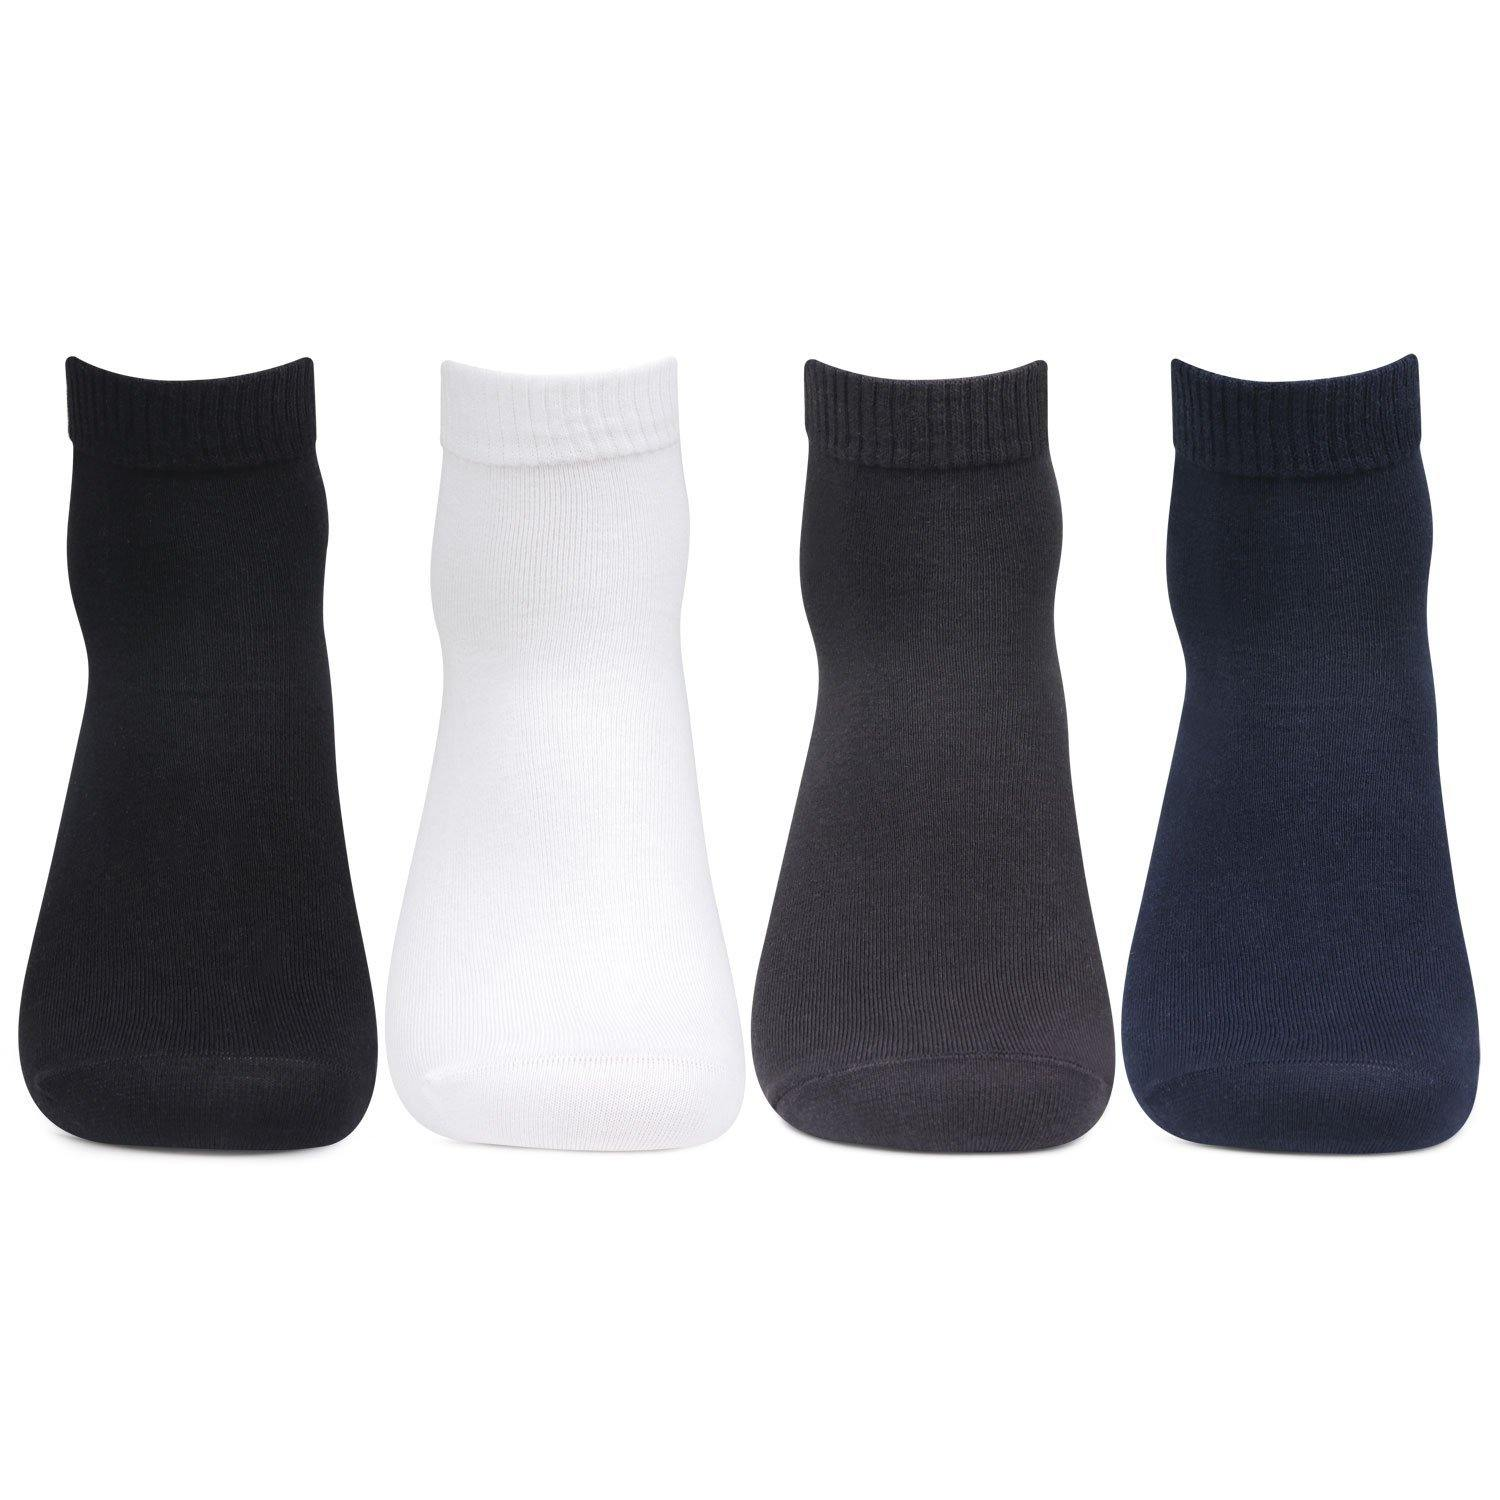 Men's Club Class Multi-Pack Ankle Socks- Pack of 4